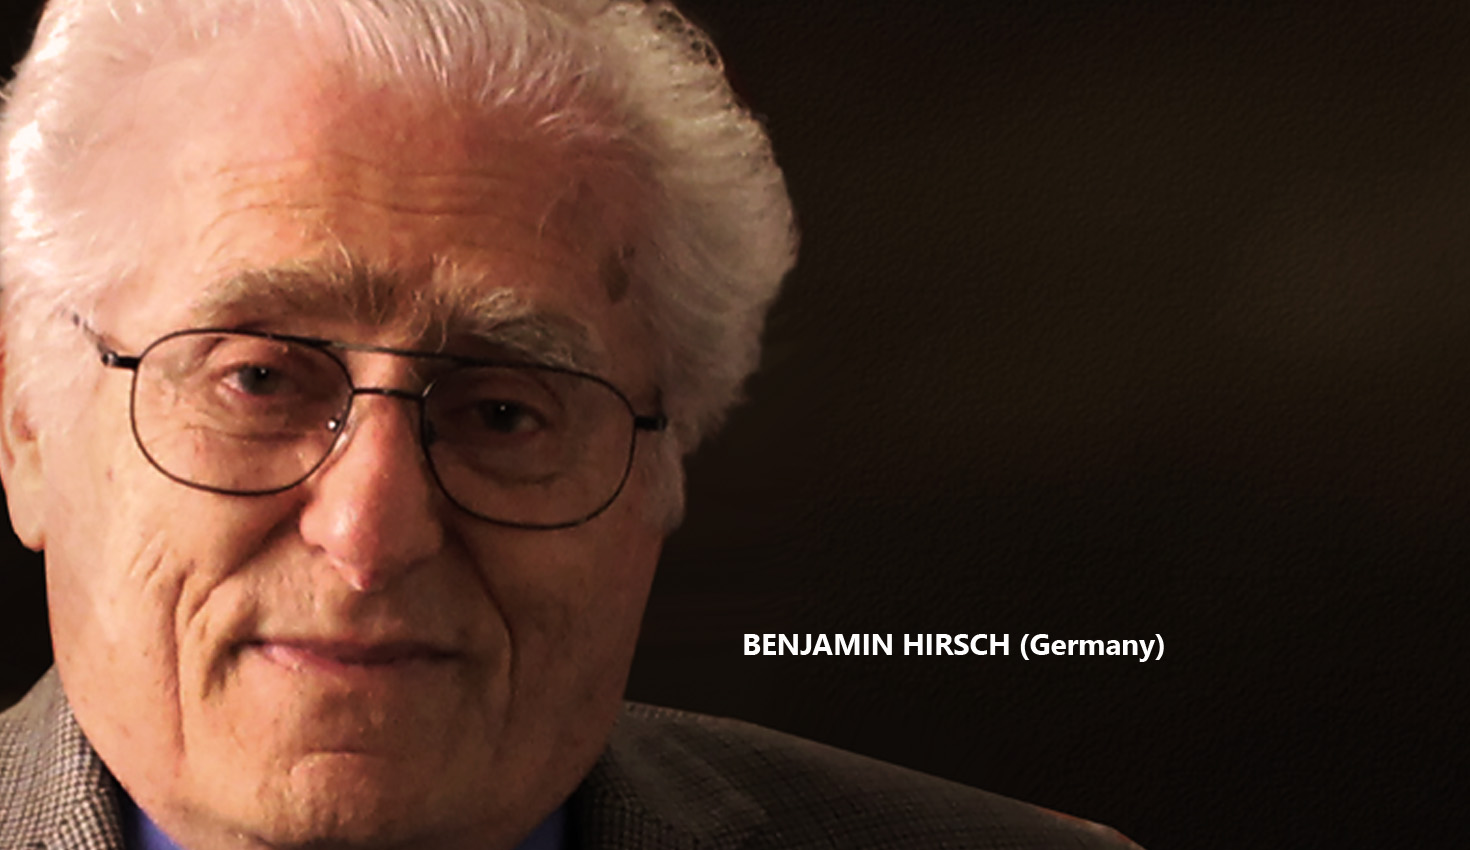 Benjamin Hirsch (Germany): Remarkable Stories from the Holocaust